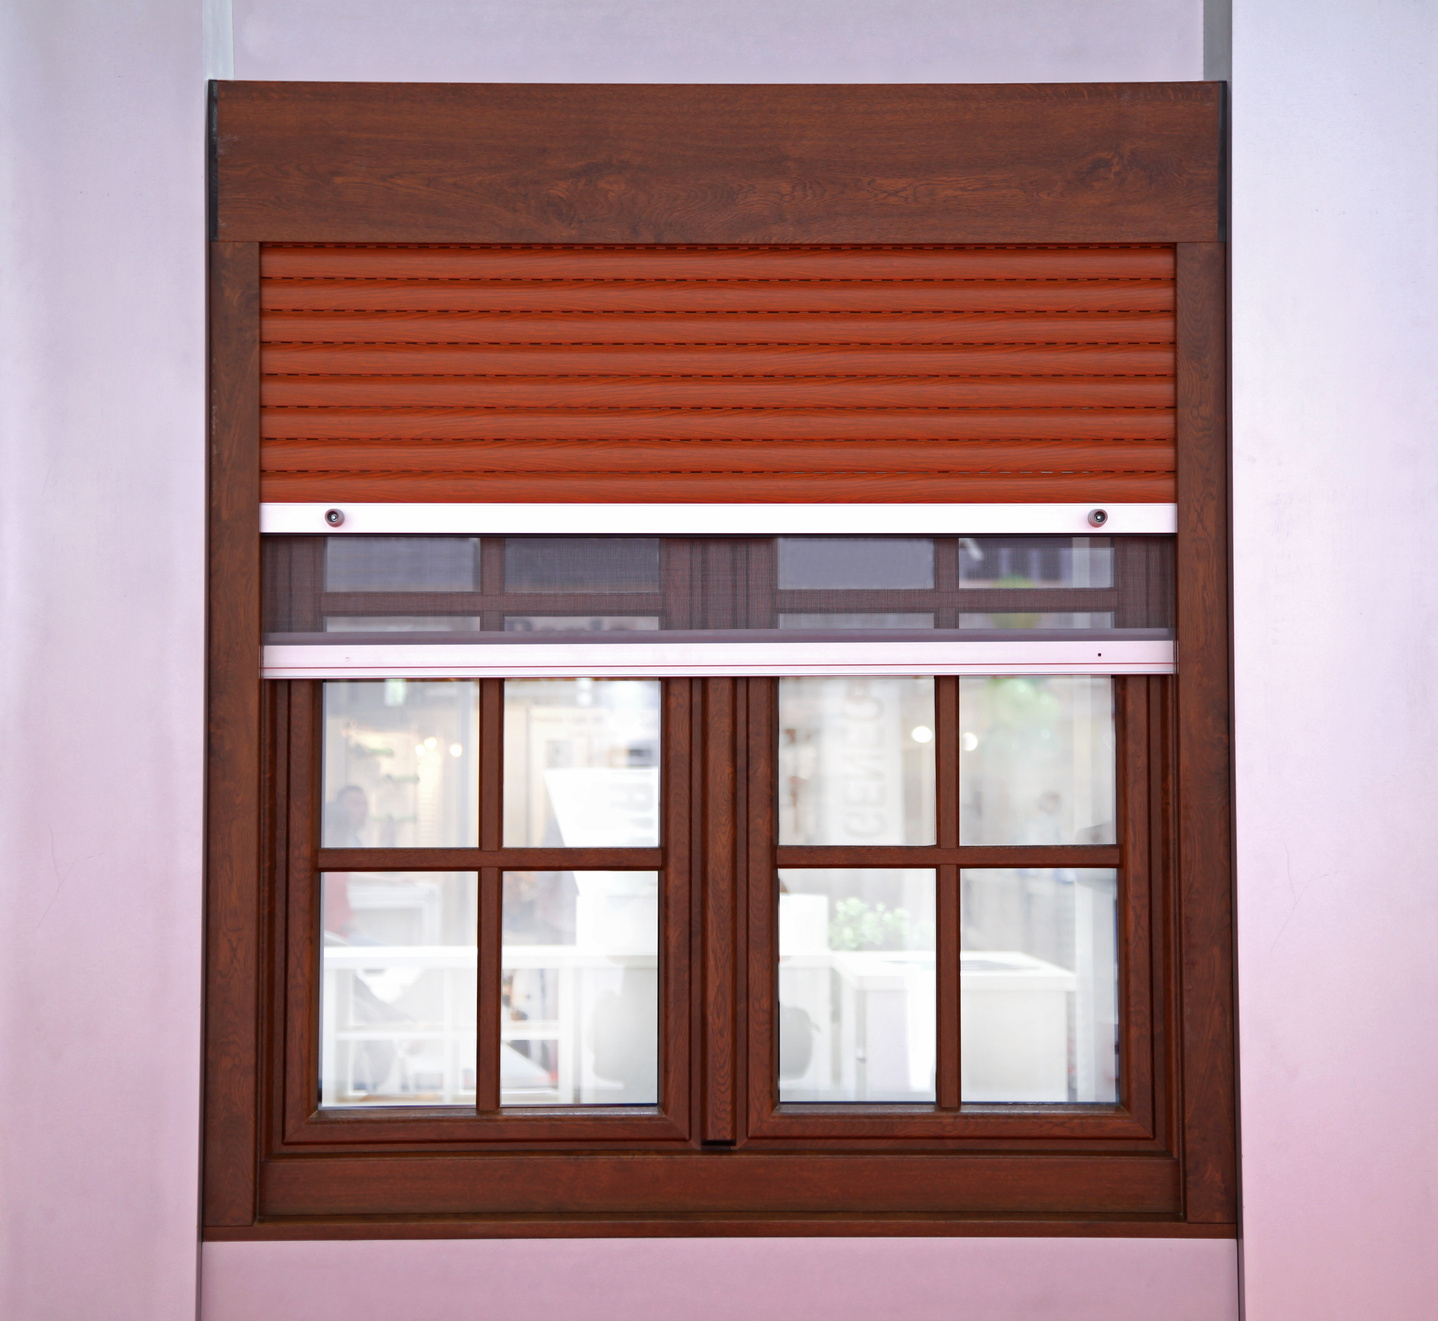 Closed window with brown blinds from outside